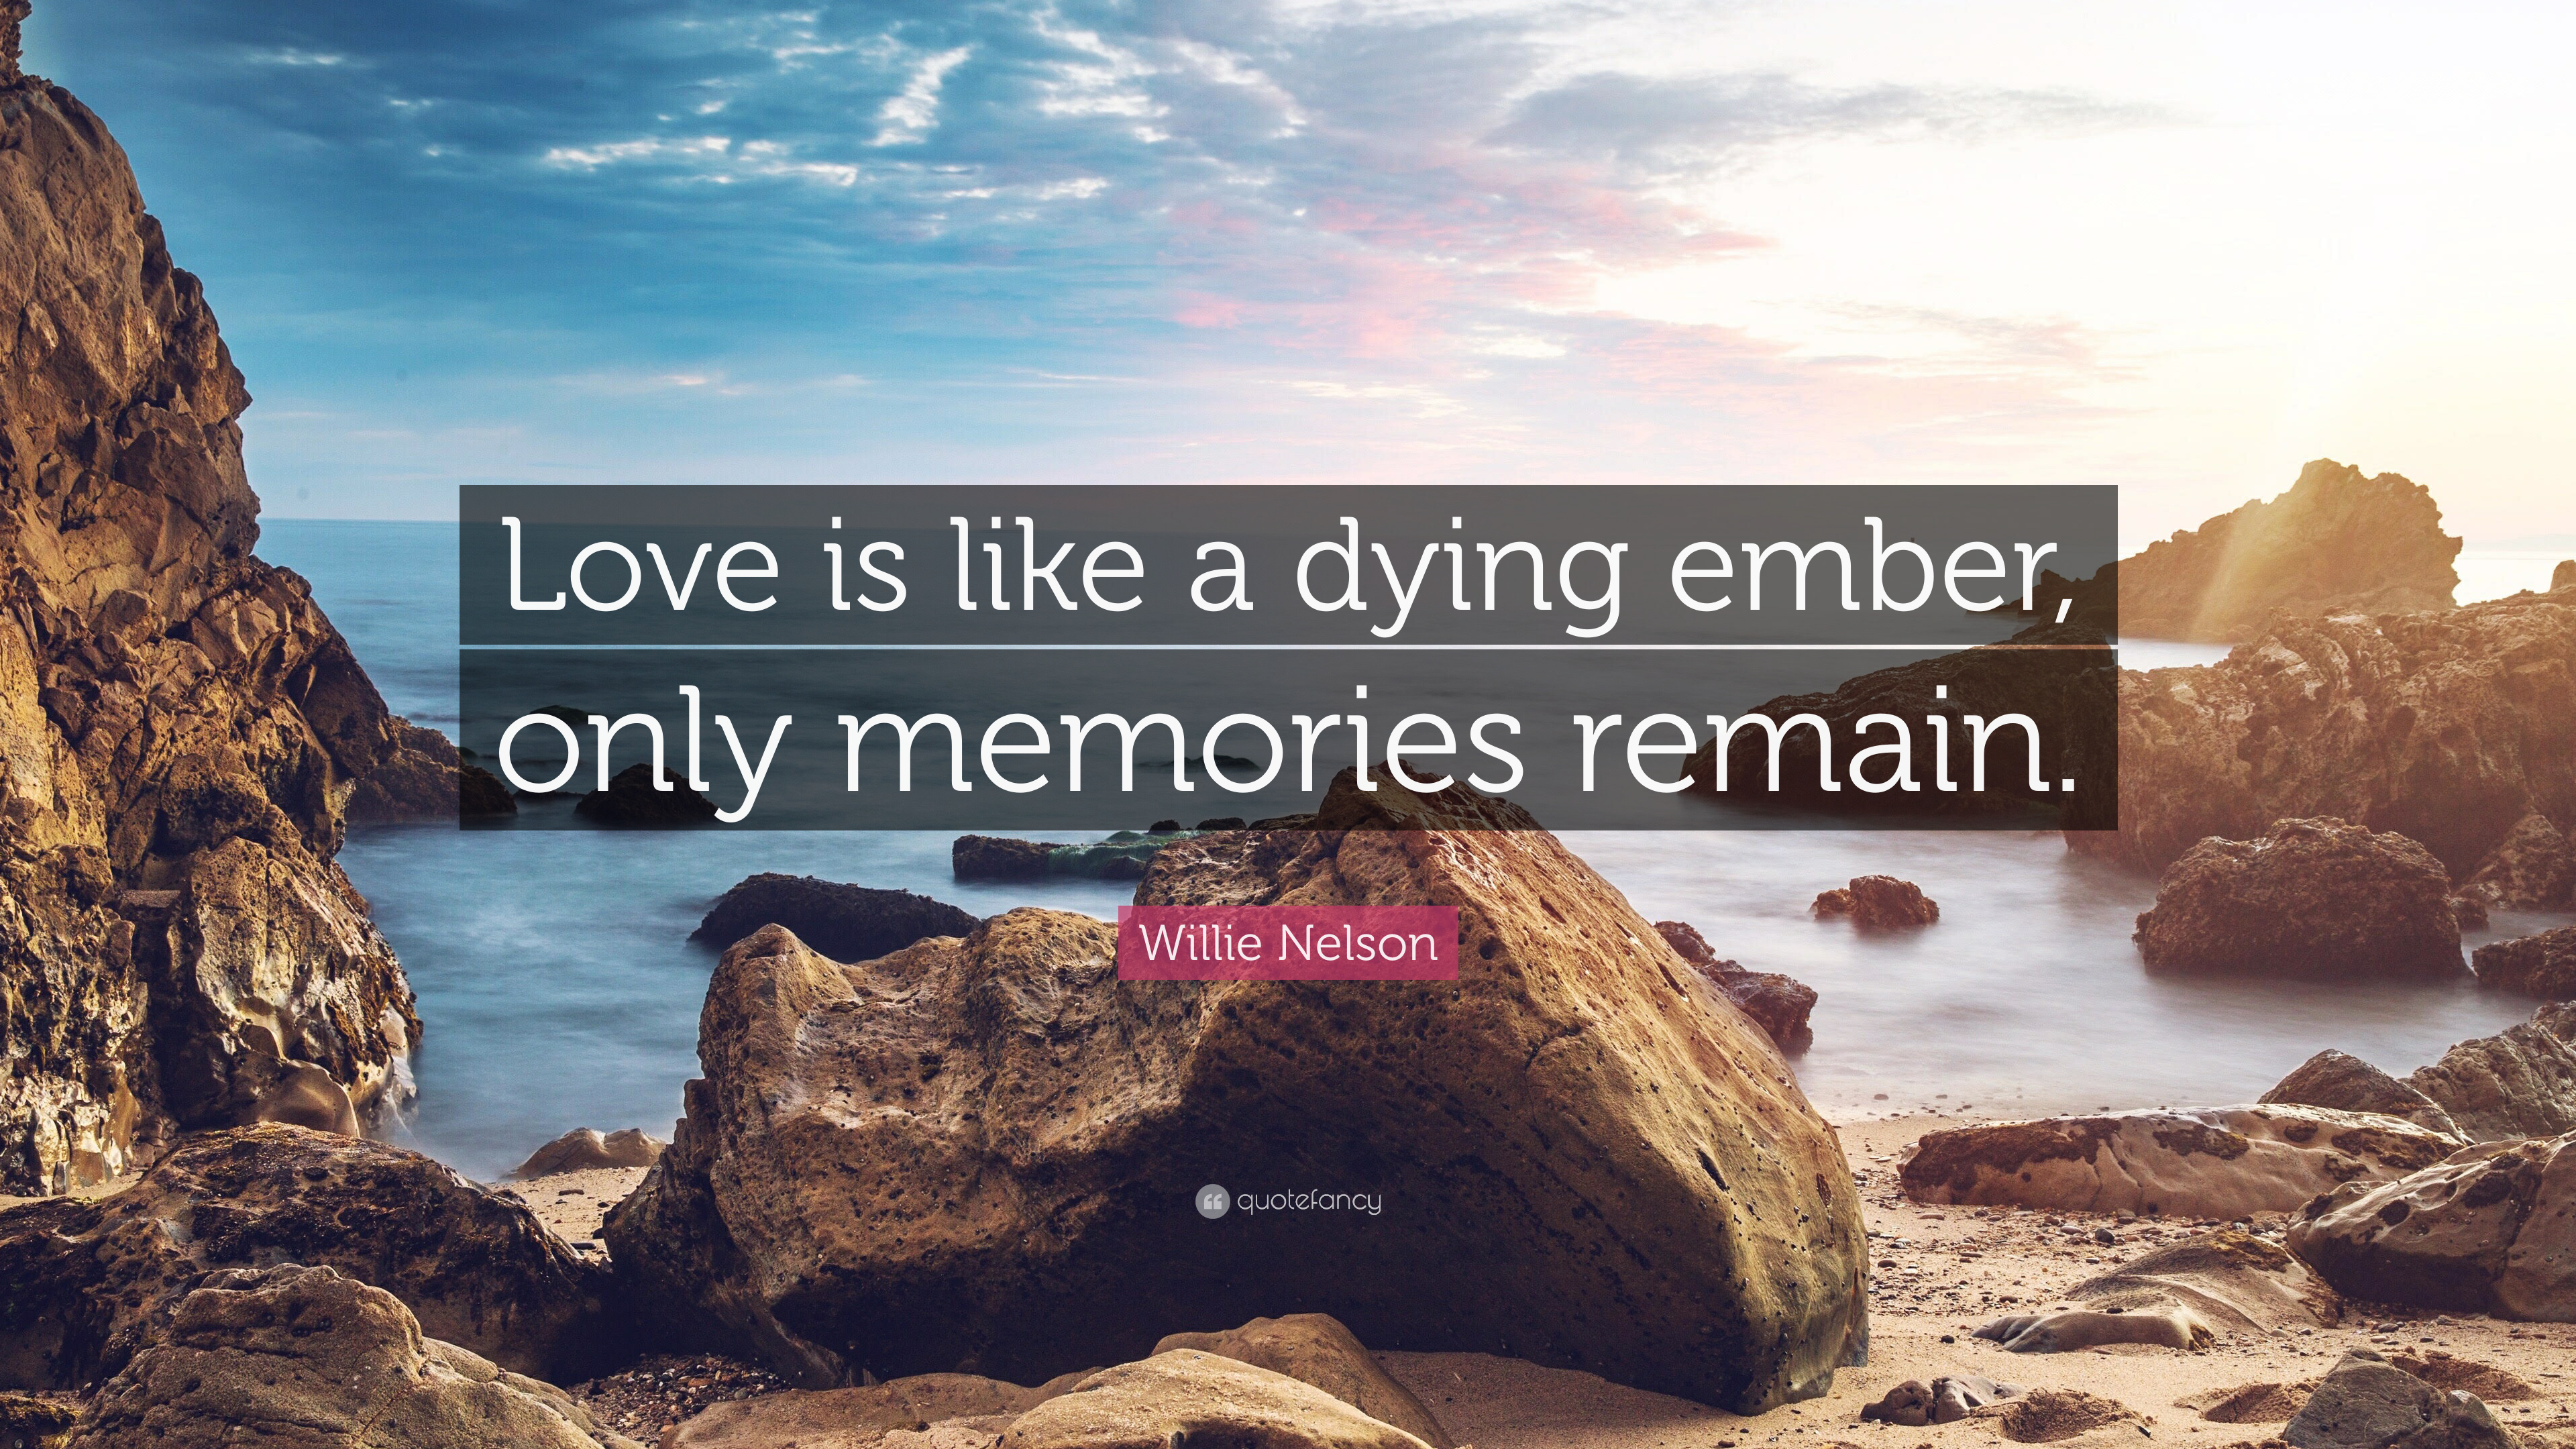 Willie Nelson Quote Love Is Like A Dying Ember Only Memories Remain 10 Wallpapers Quotefancy